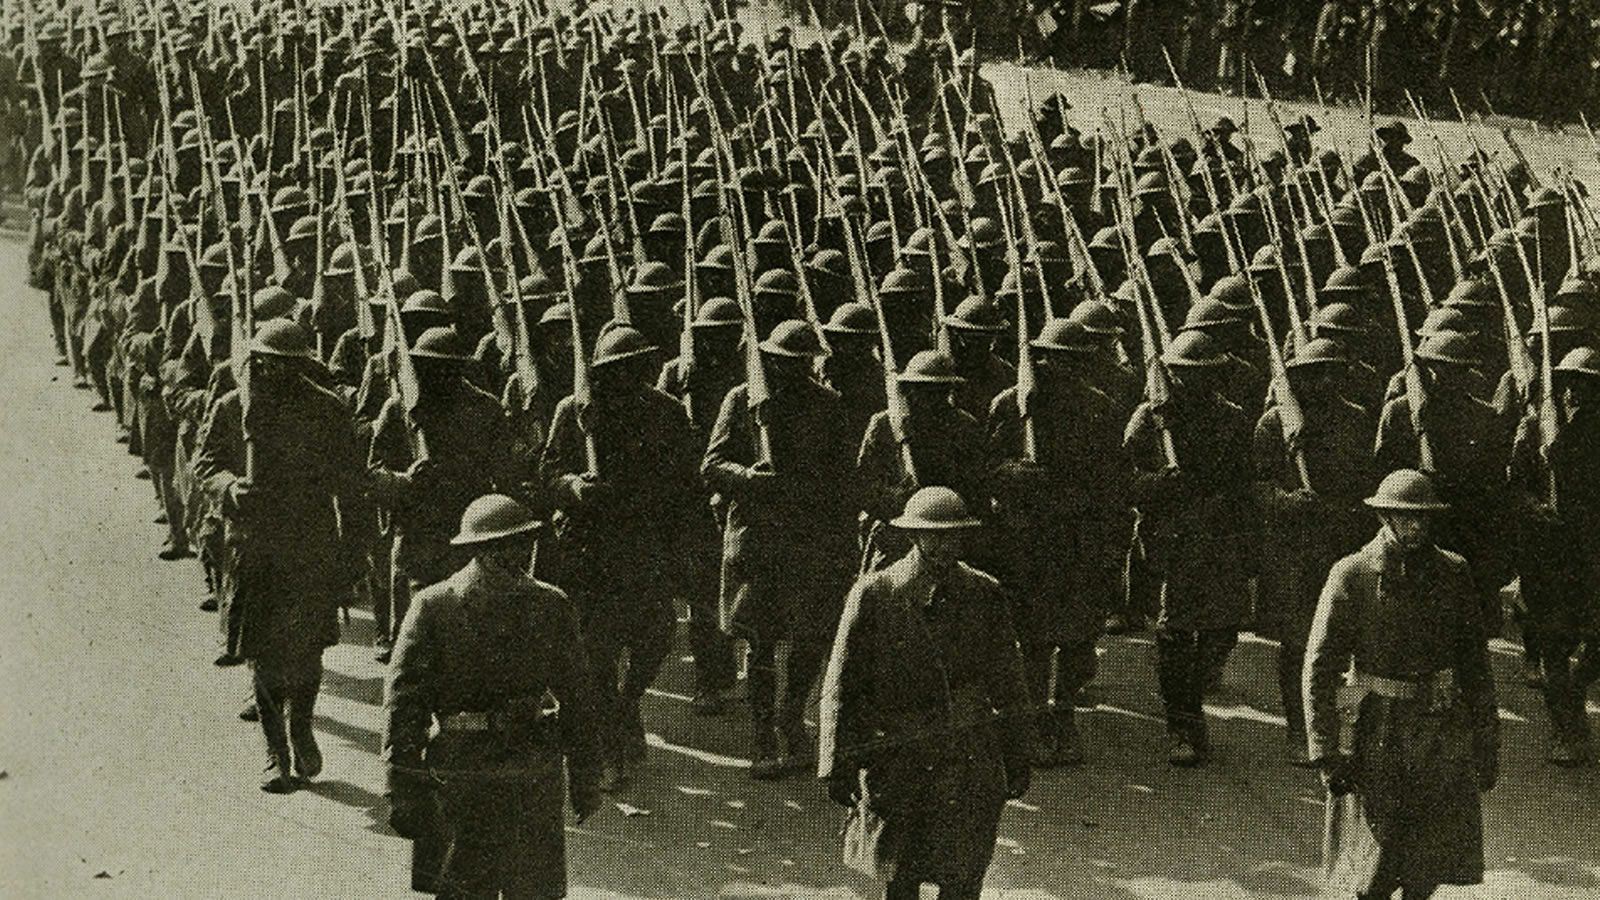 Ww1 Wallpapers Top Free Ww1 Backgrounds Wallpaperaccess